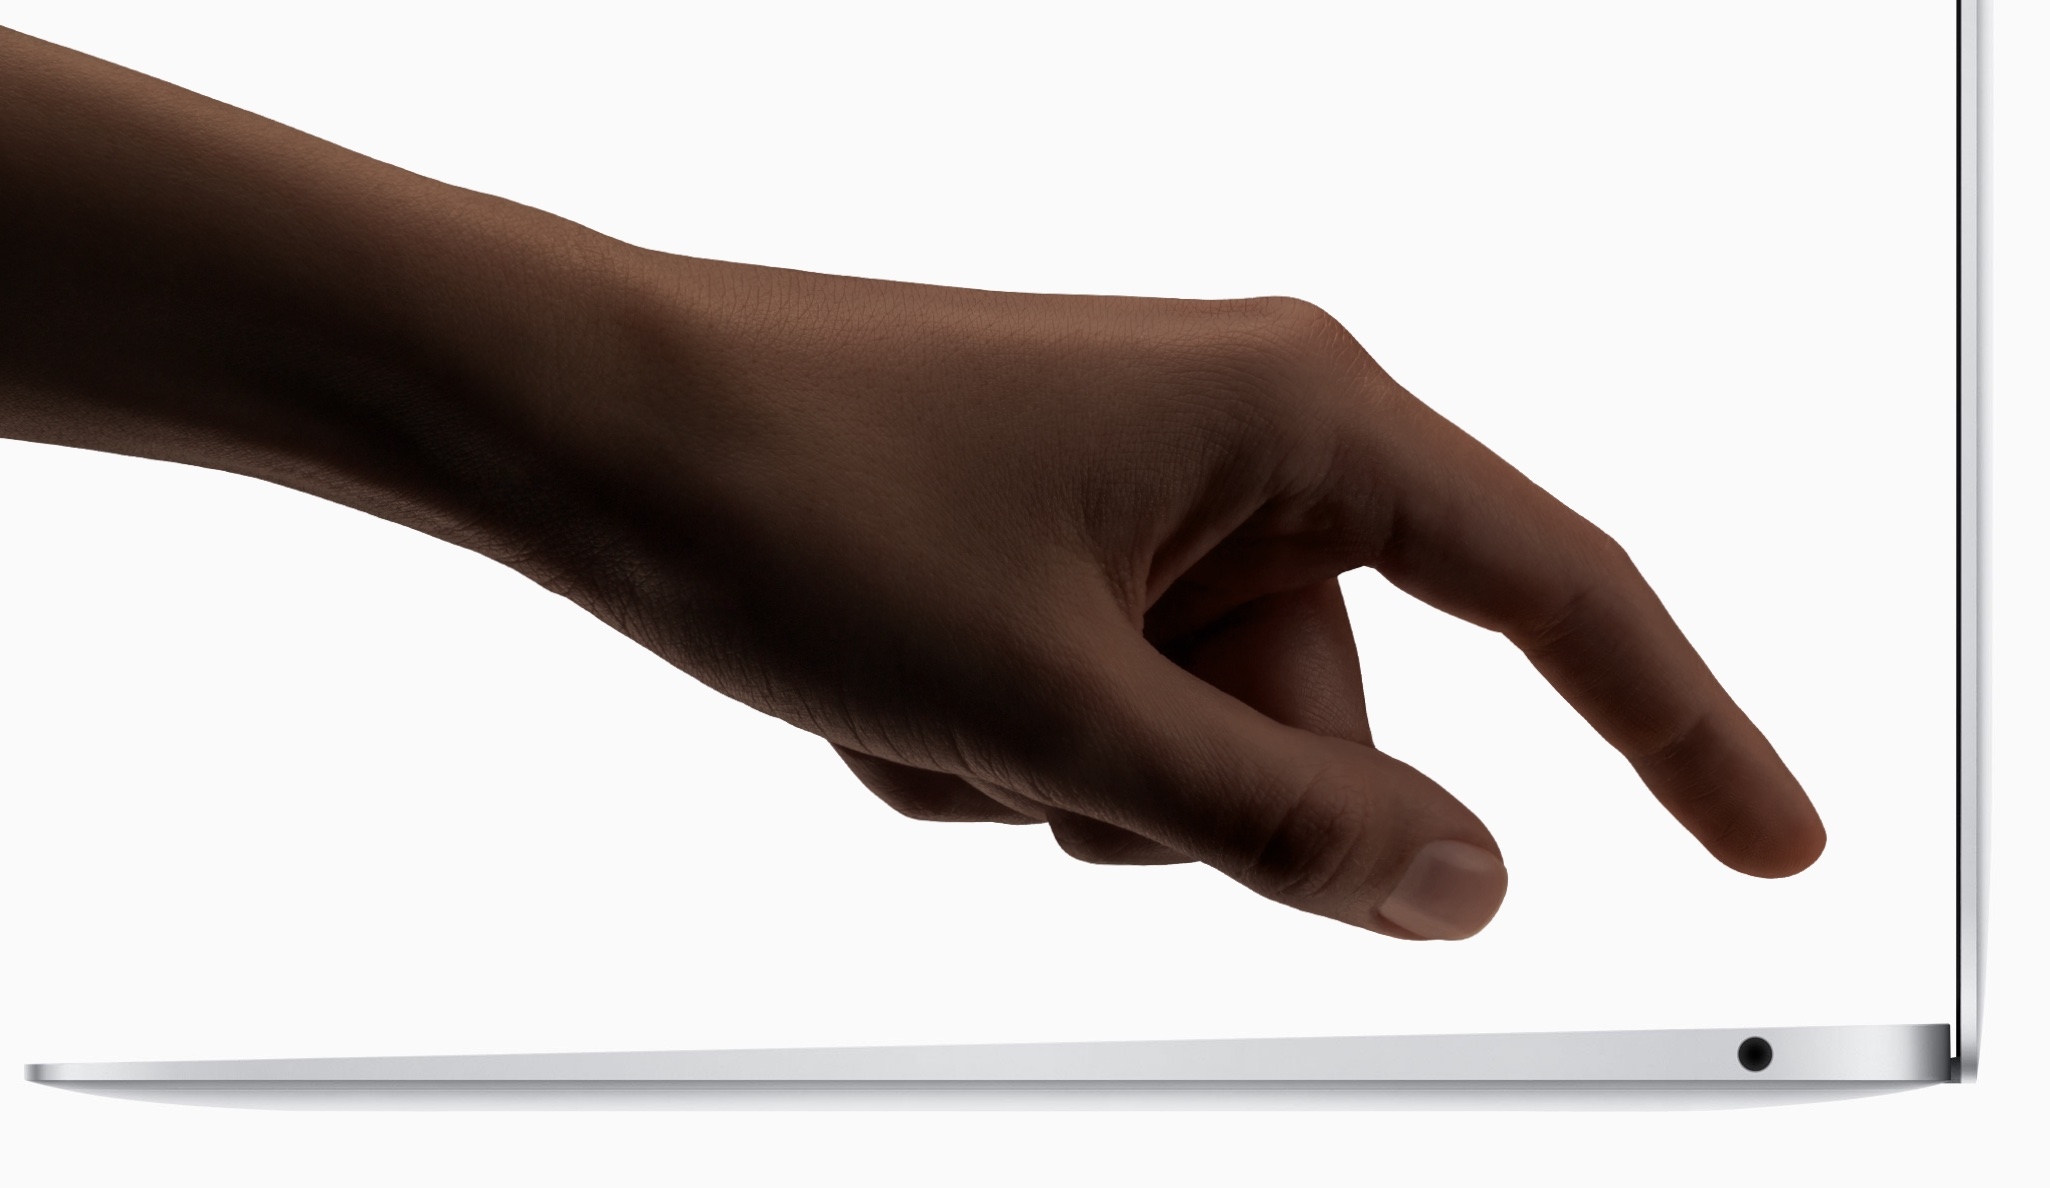 Apple reportedly to discontinue MacBook Air-cnTechPost